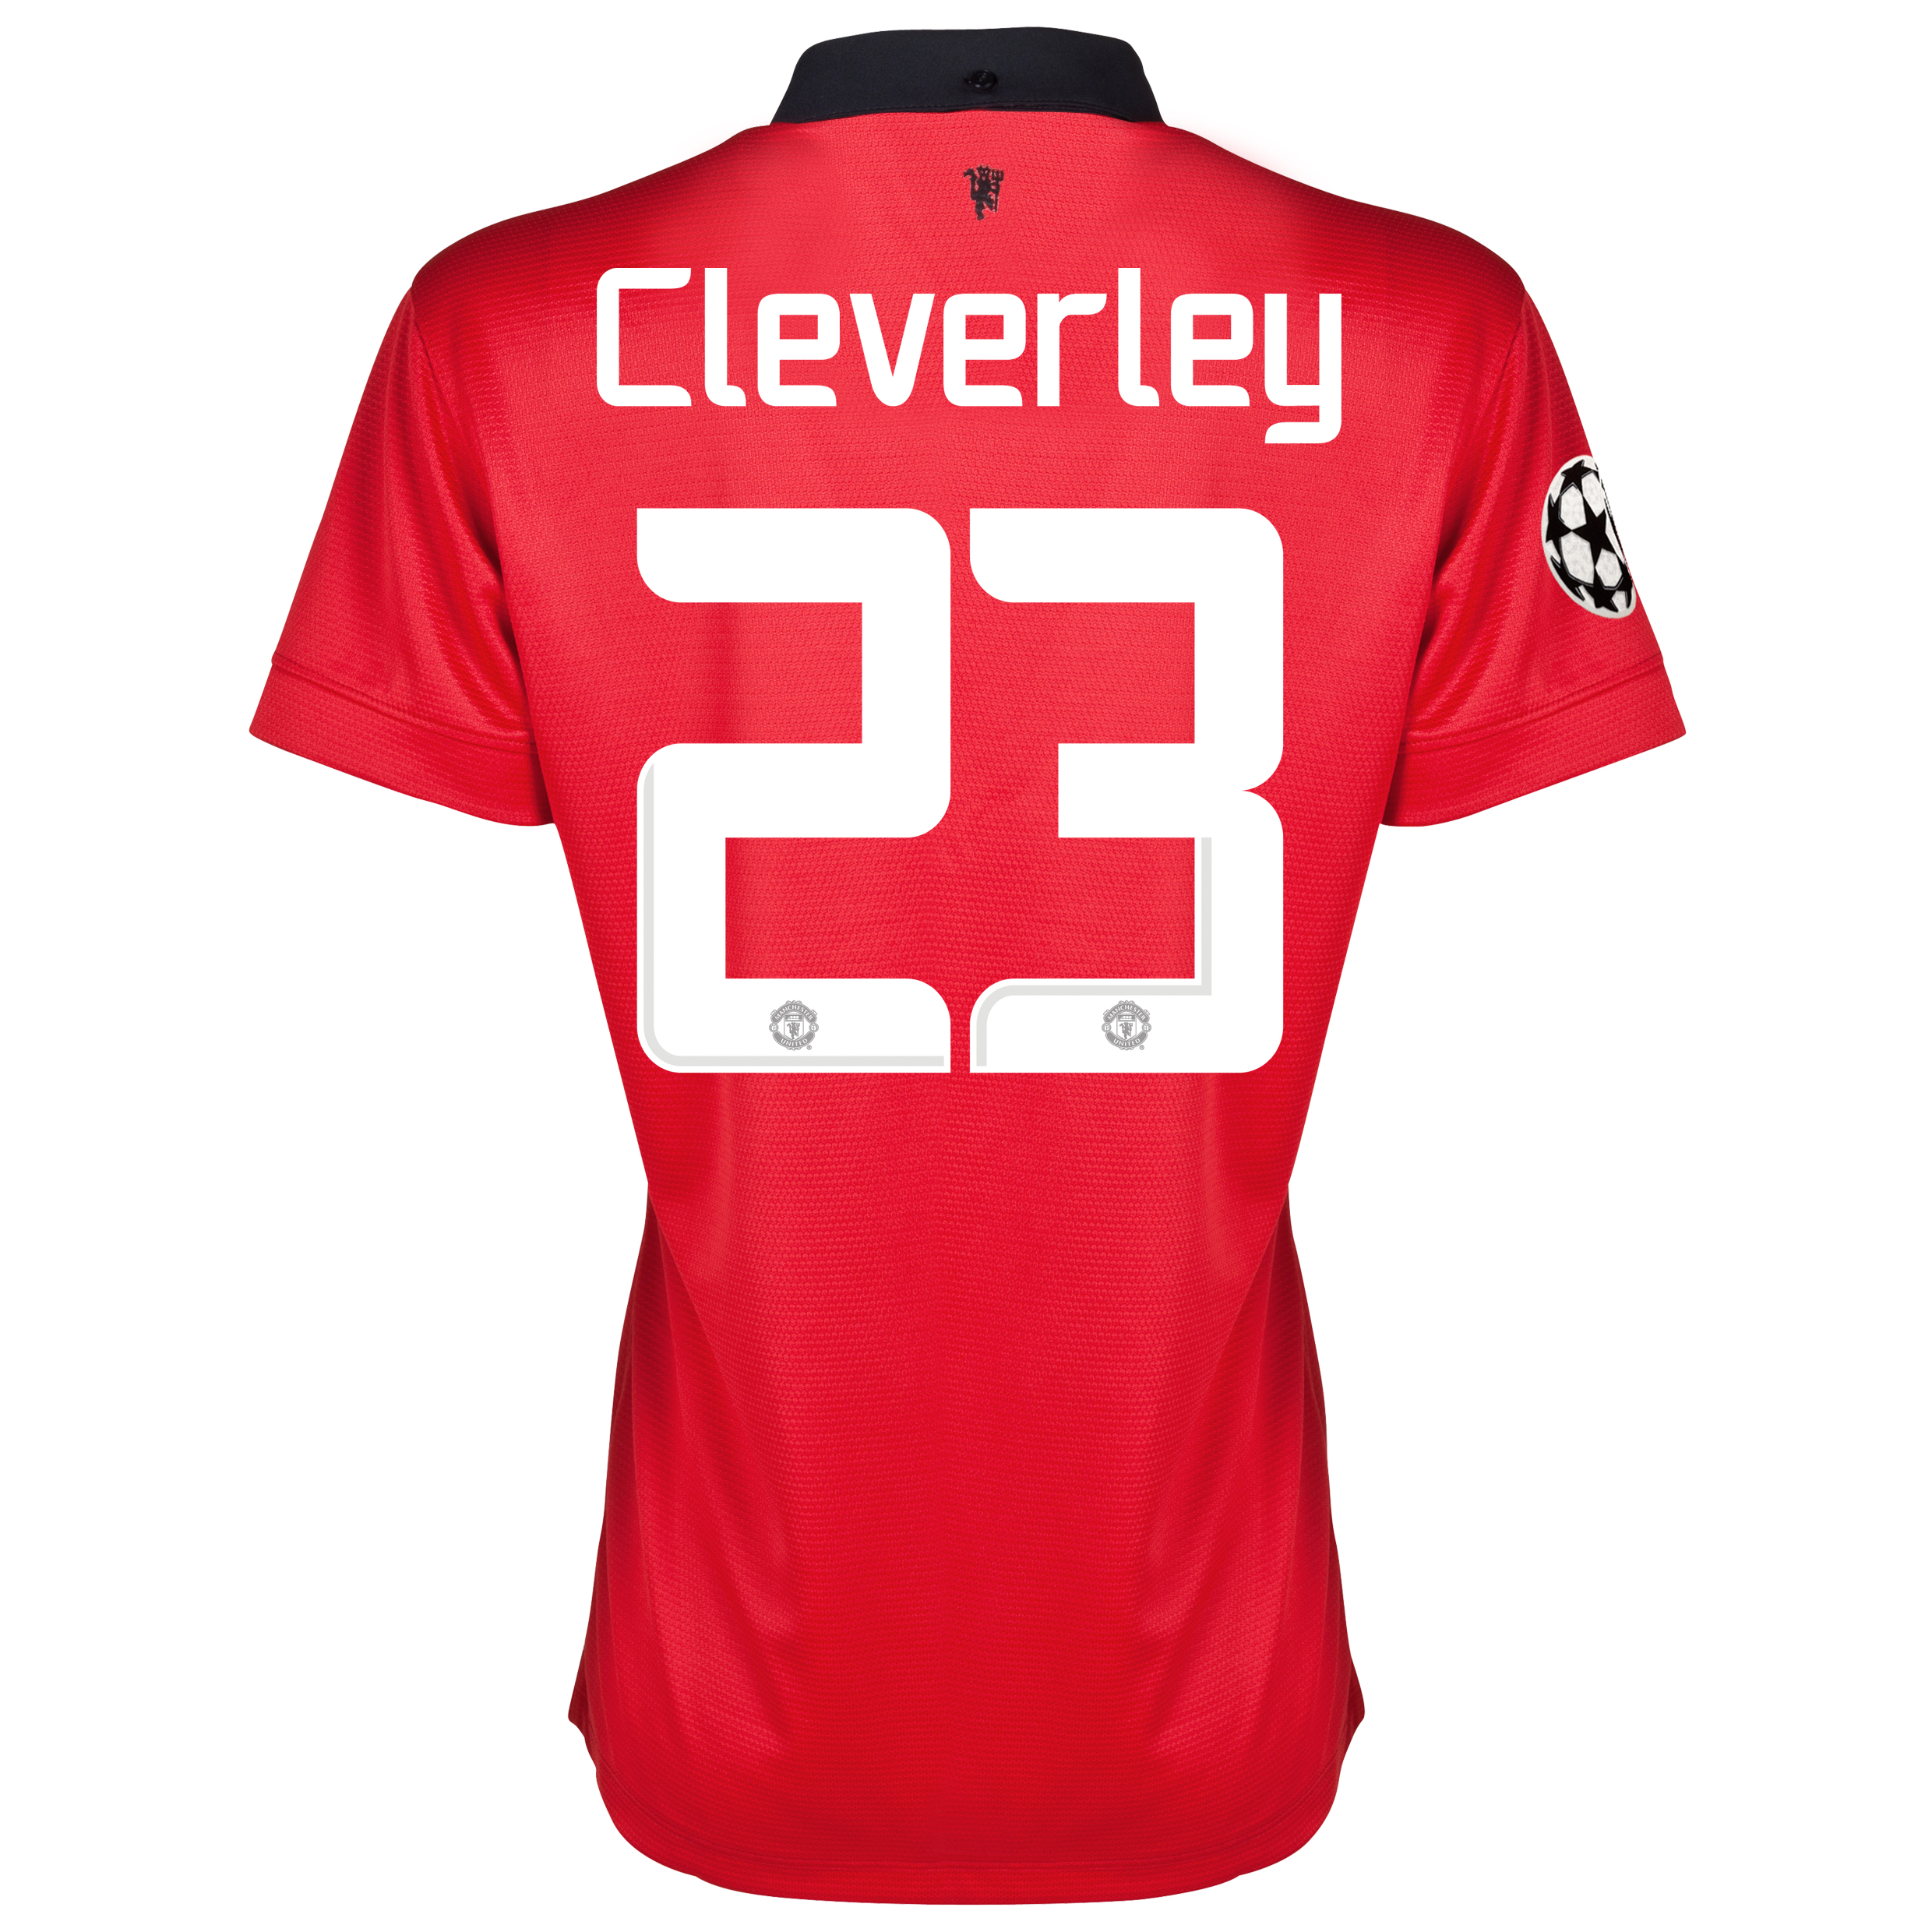 Manchester United UEFA Champions League Home Shirt 2013/14 - Womens with Cleverley 23 printing